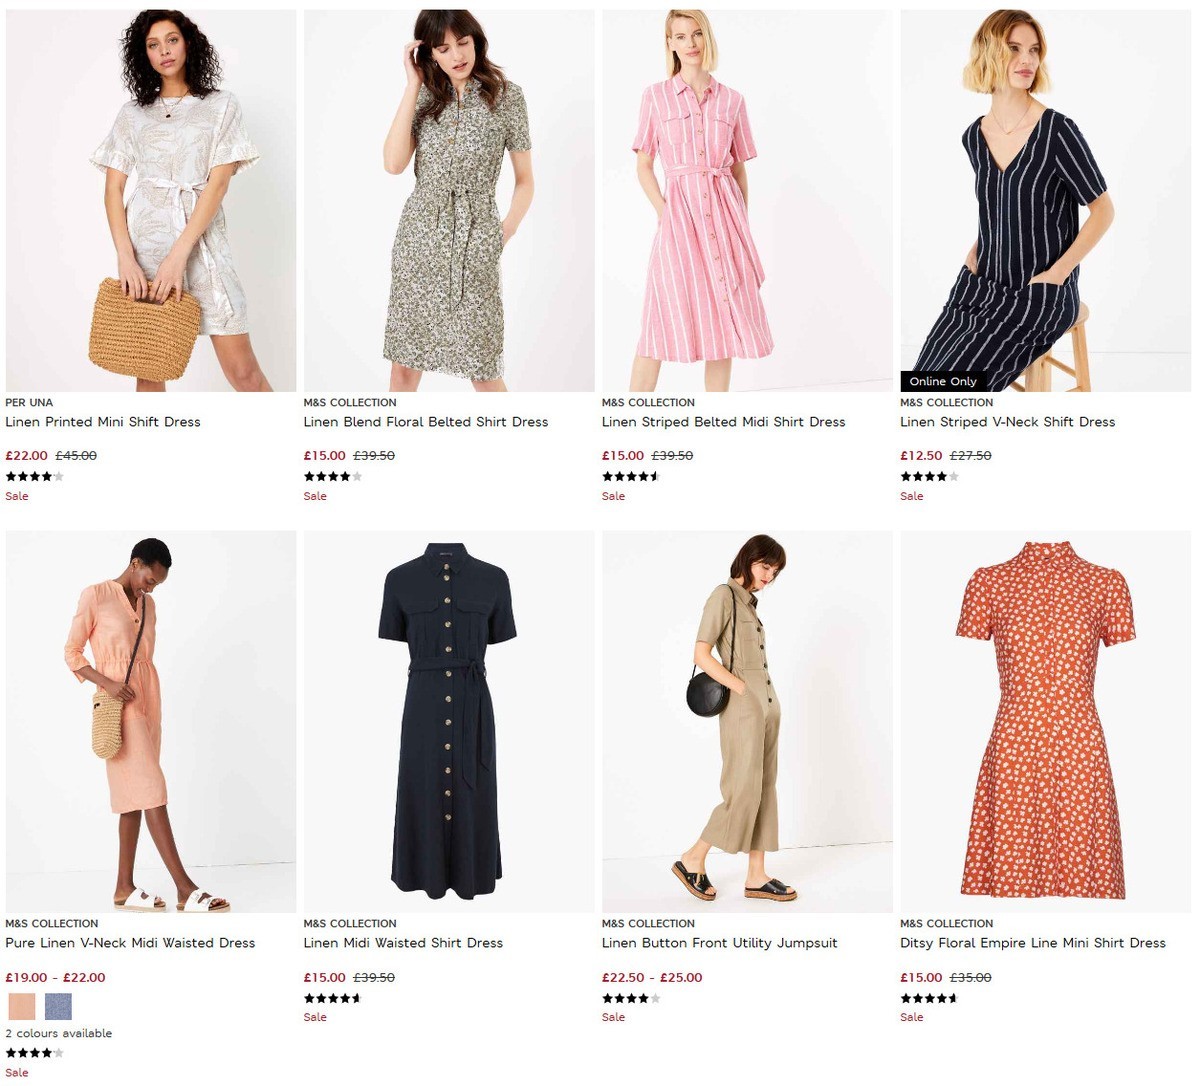 M&S Marks and Spencer Offers from July 28